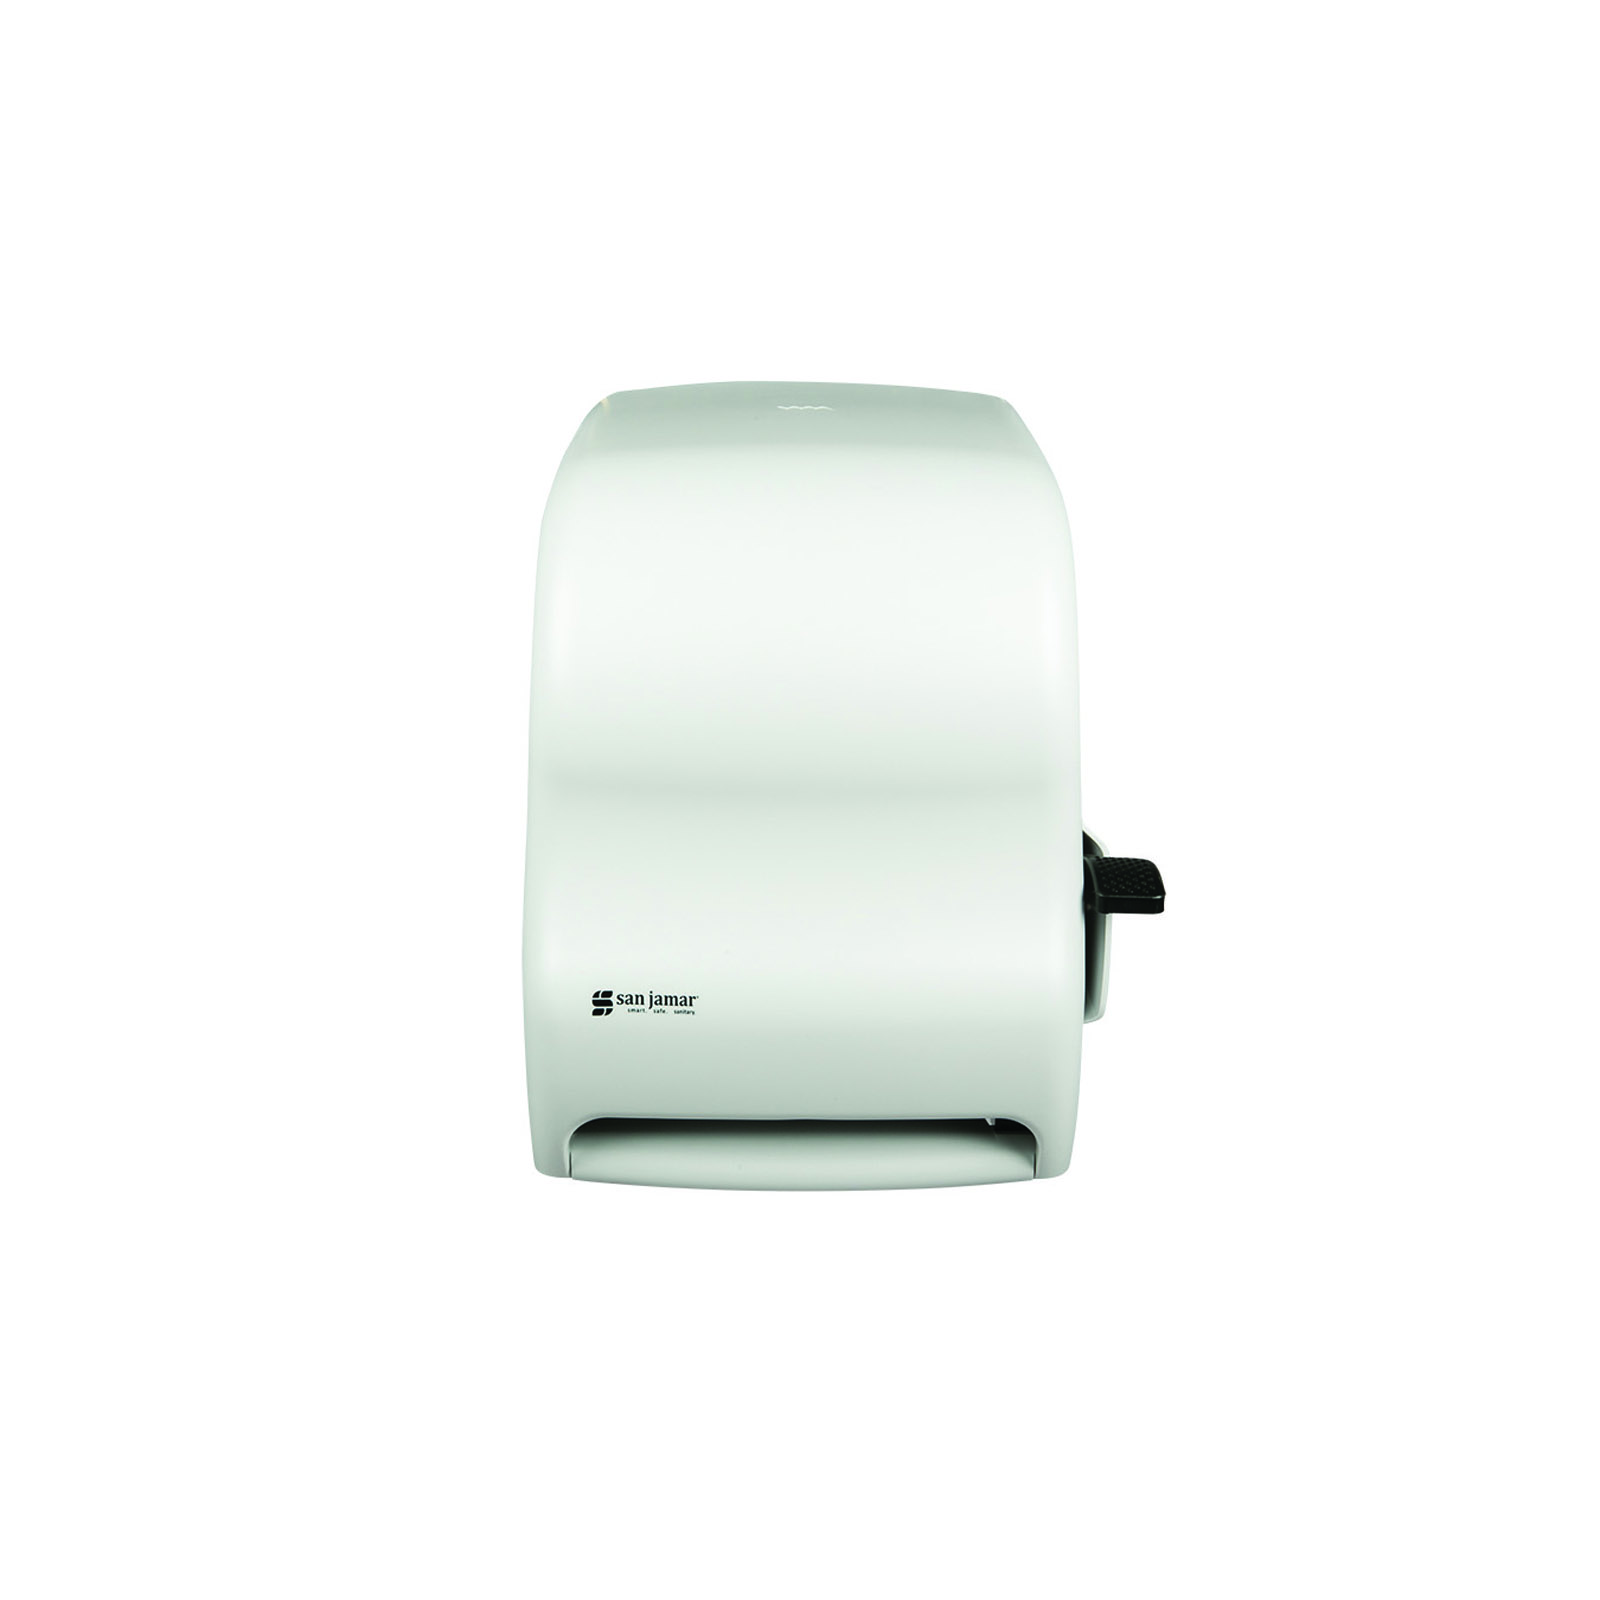 San Jamar T1100WH paper towel dispenser